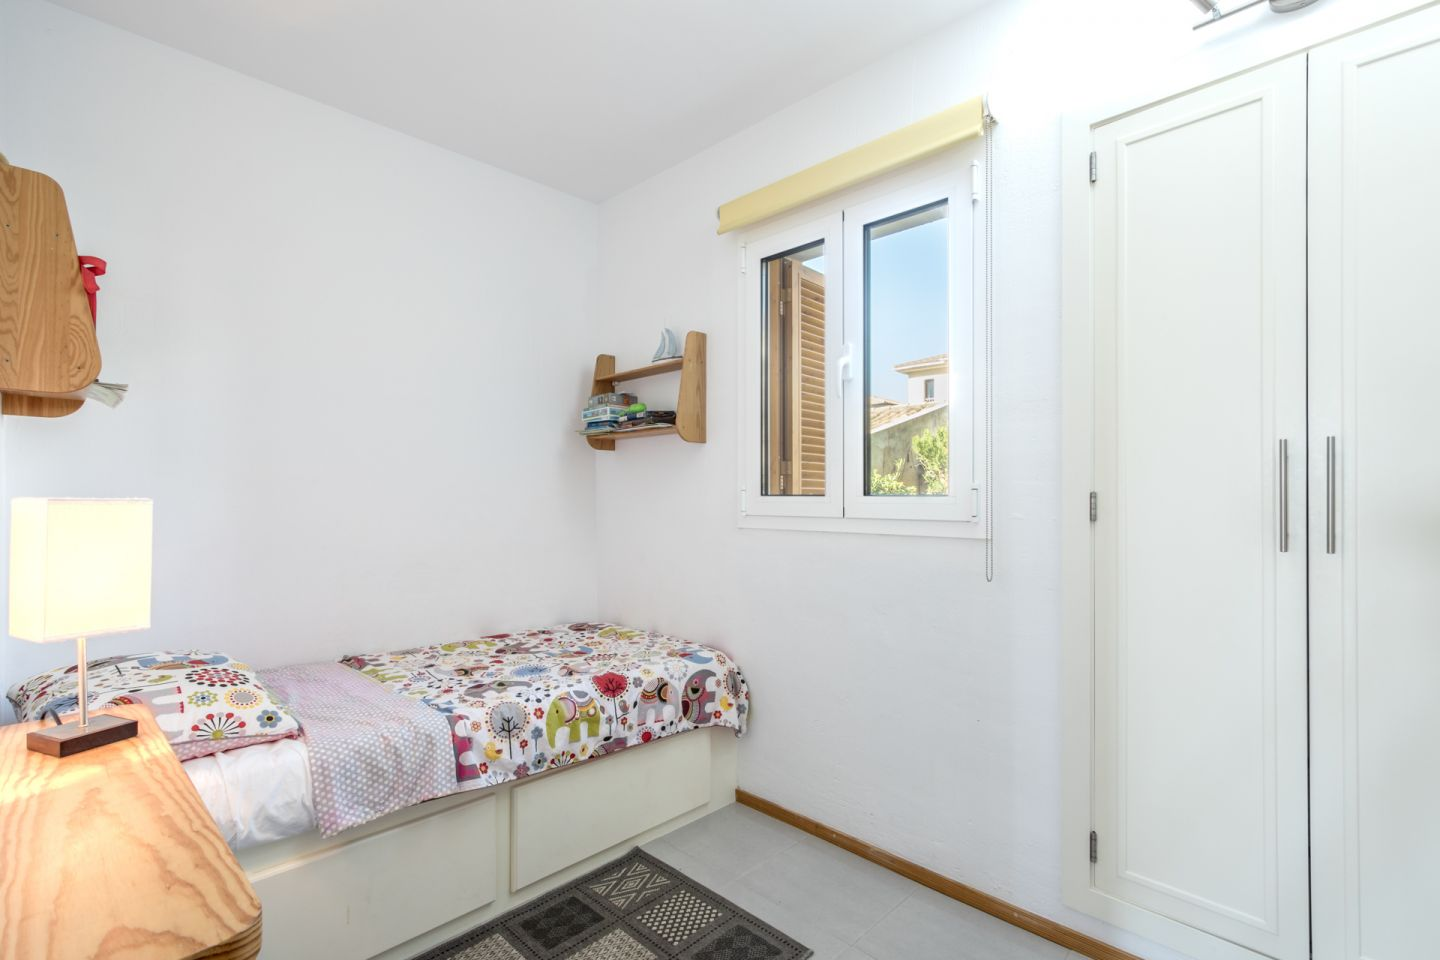 3 Bed Ground Floor For Sale in PUERTO POLLENSA 14